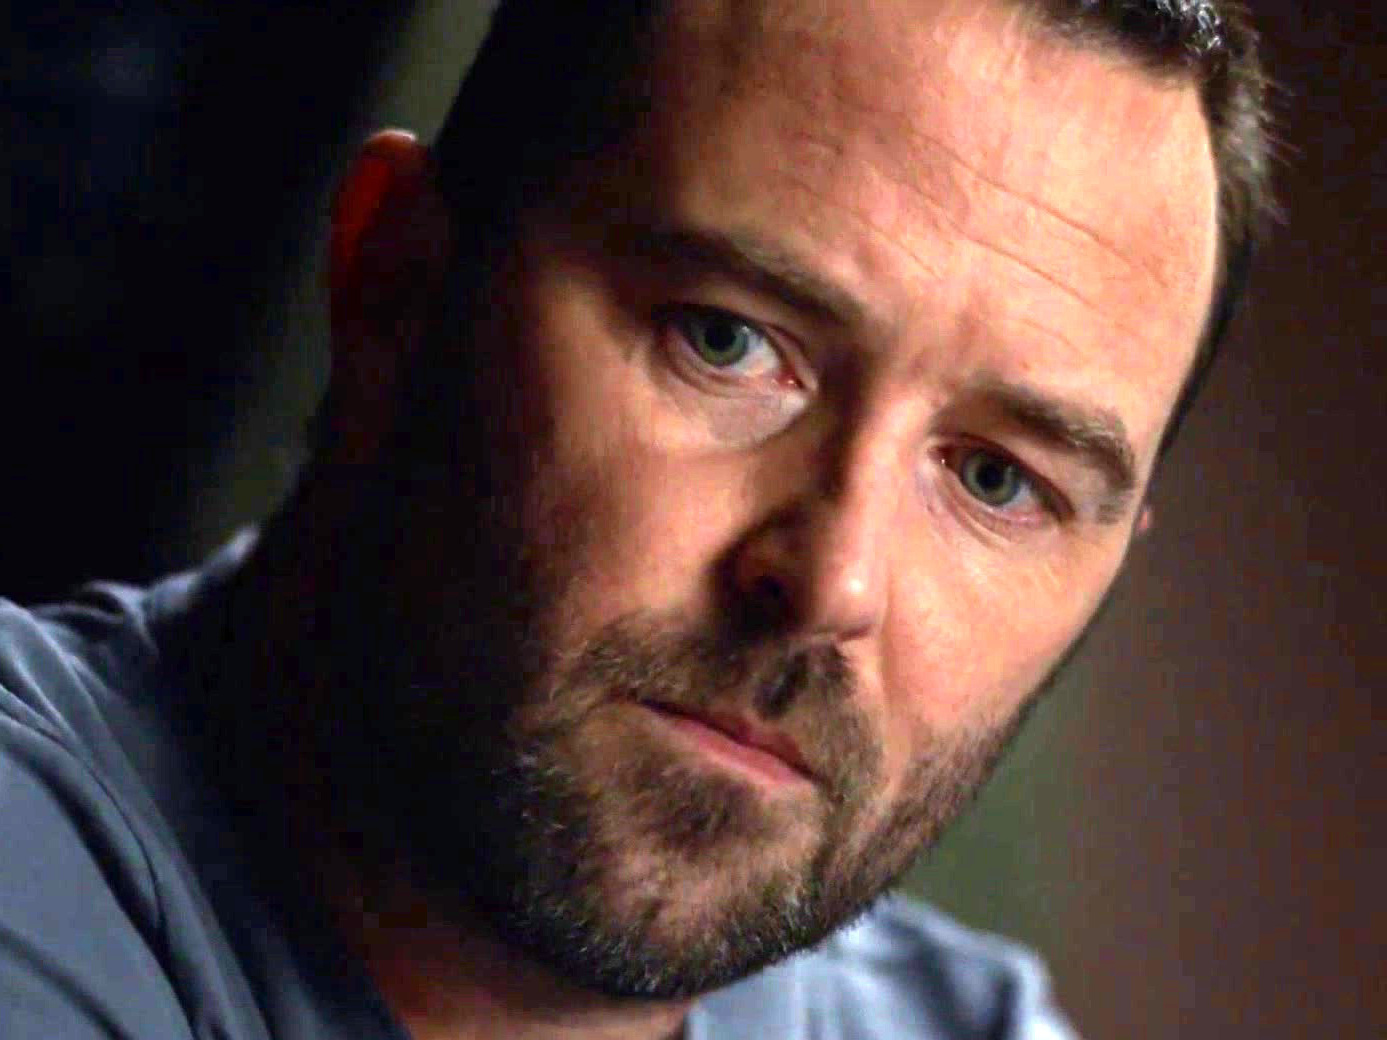 Blindspot: Jane And Weller Connect After A Harrowing Day